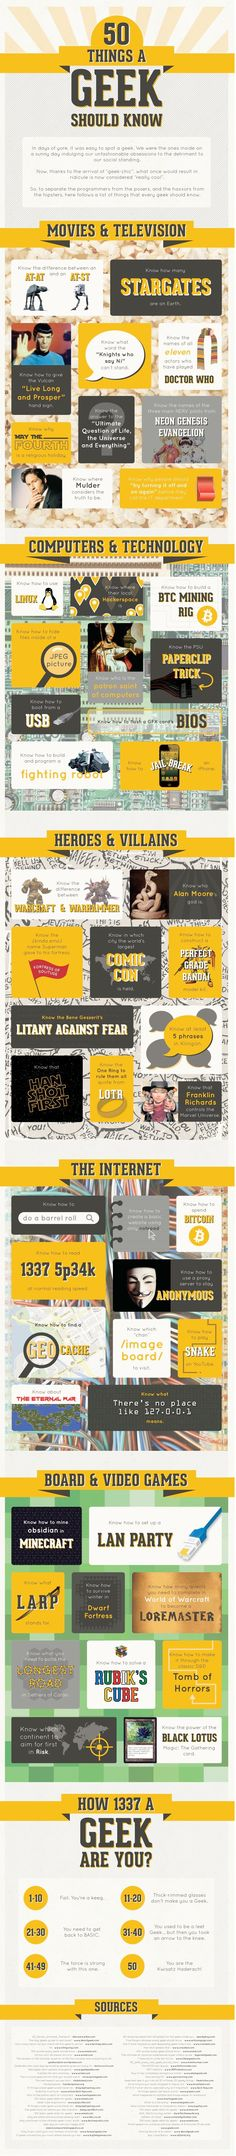 50 things a #geek should know #infographic via @Hannah Mestel Mestel Mestel Morgan